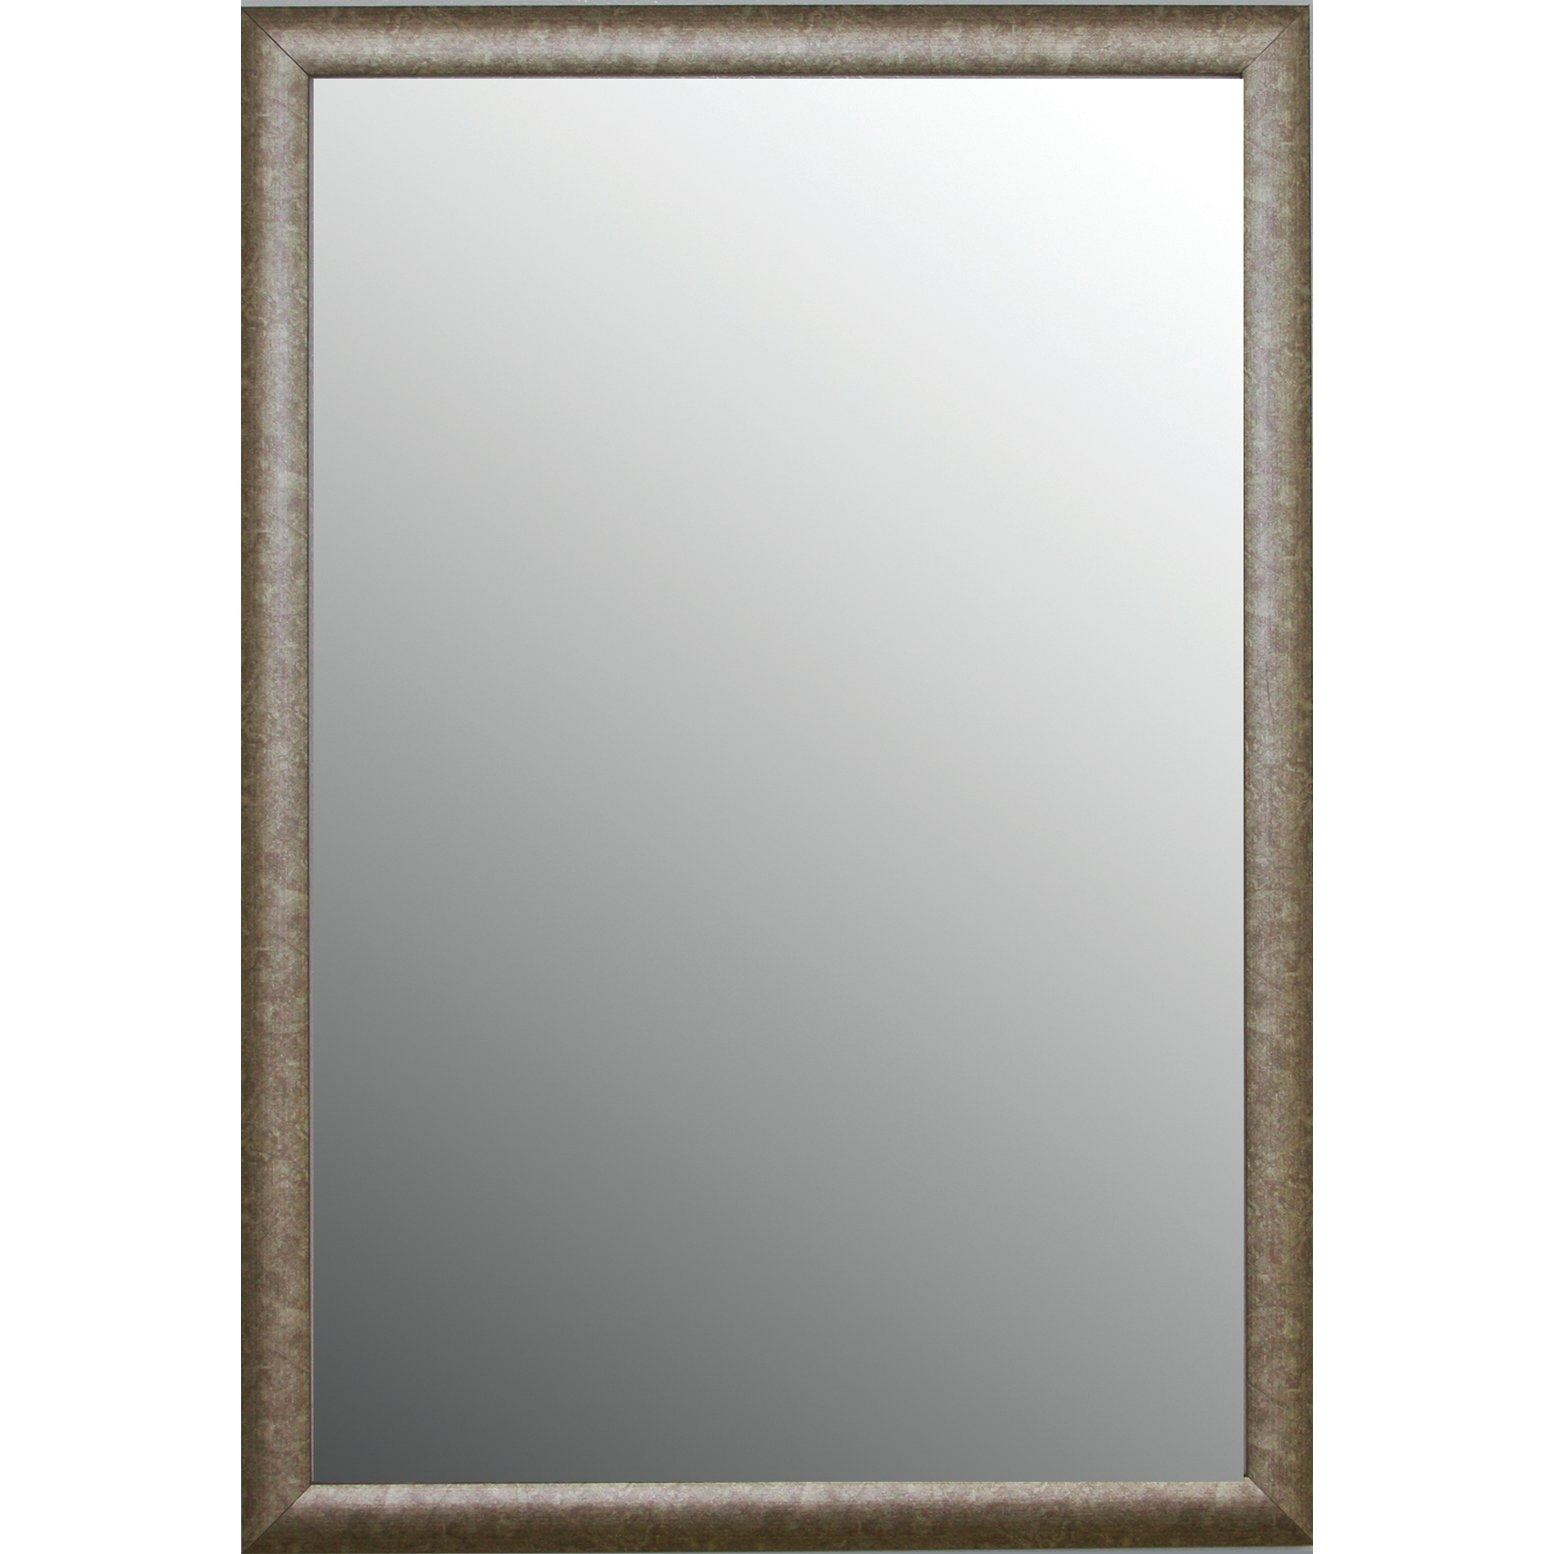 Second Look Mirrors Vintage Champagne Gold With Silver Highlights With Silver Vintage Mirror (Image 6 of 15)